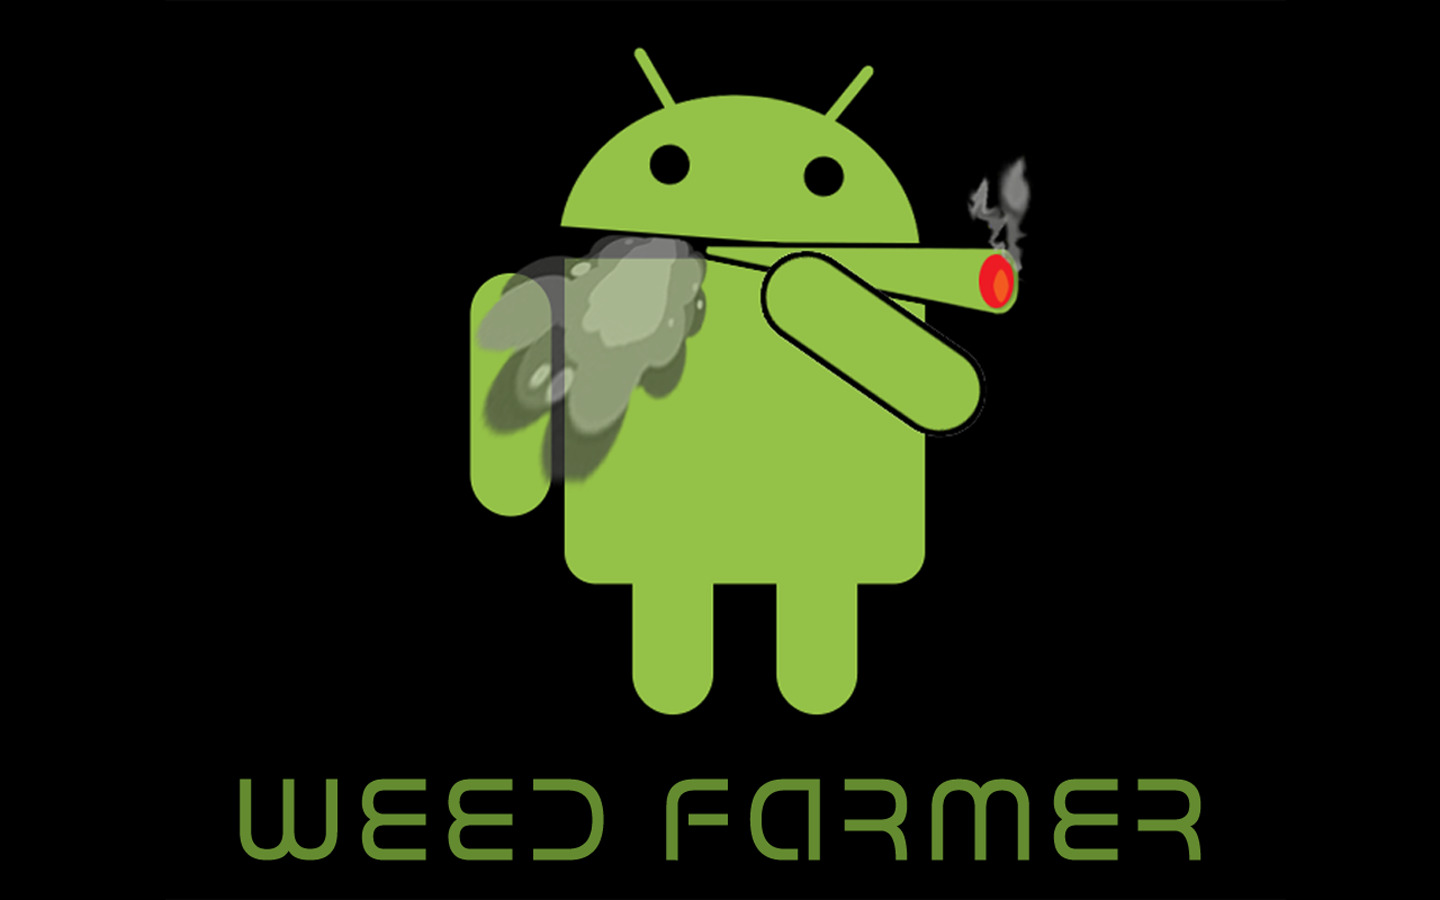 smoking black drugs Droid HD Wallpaper